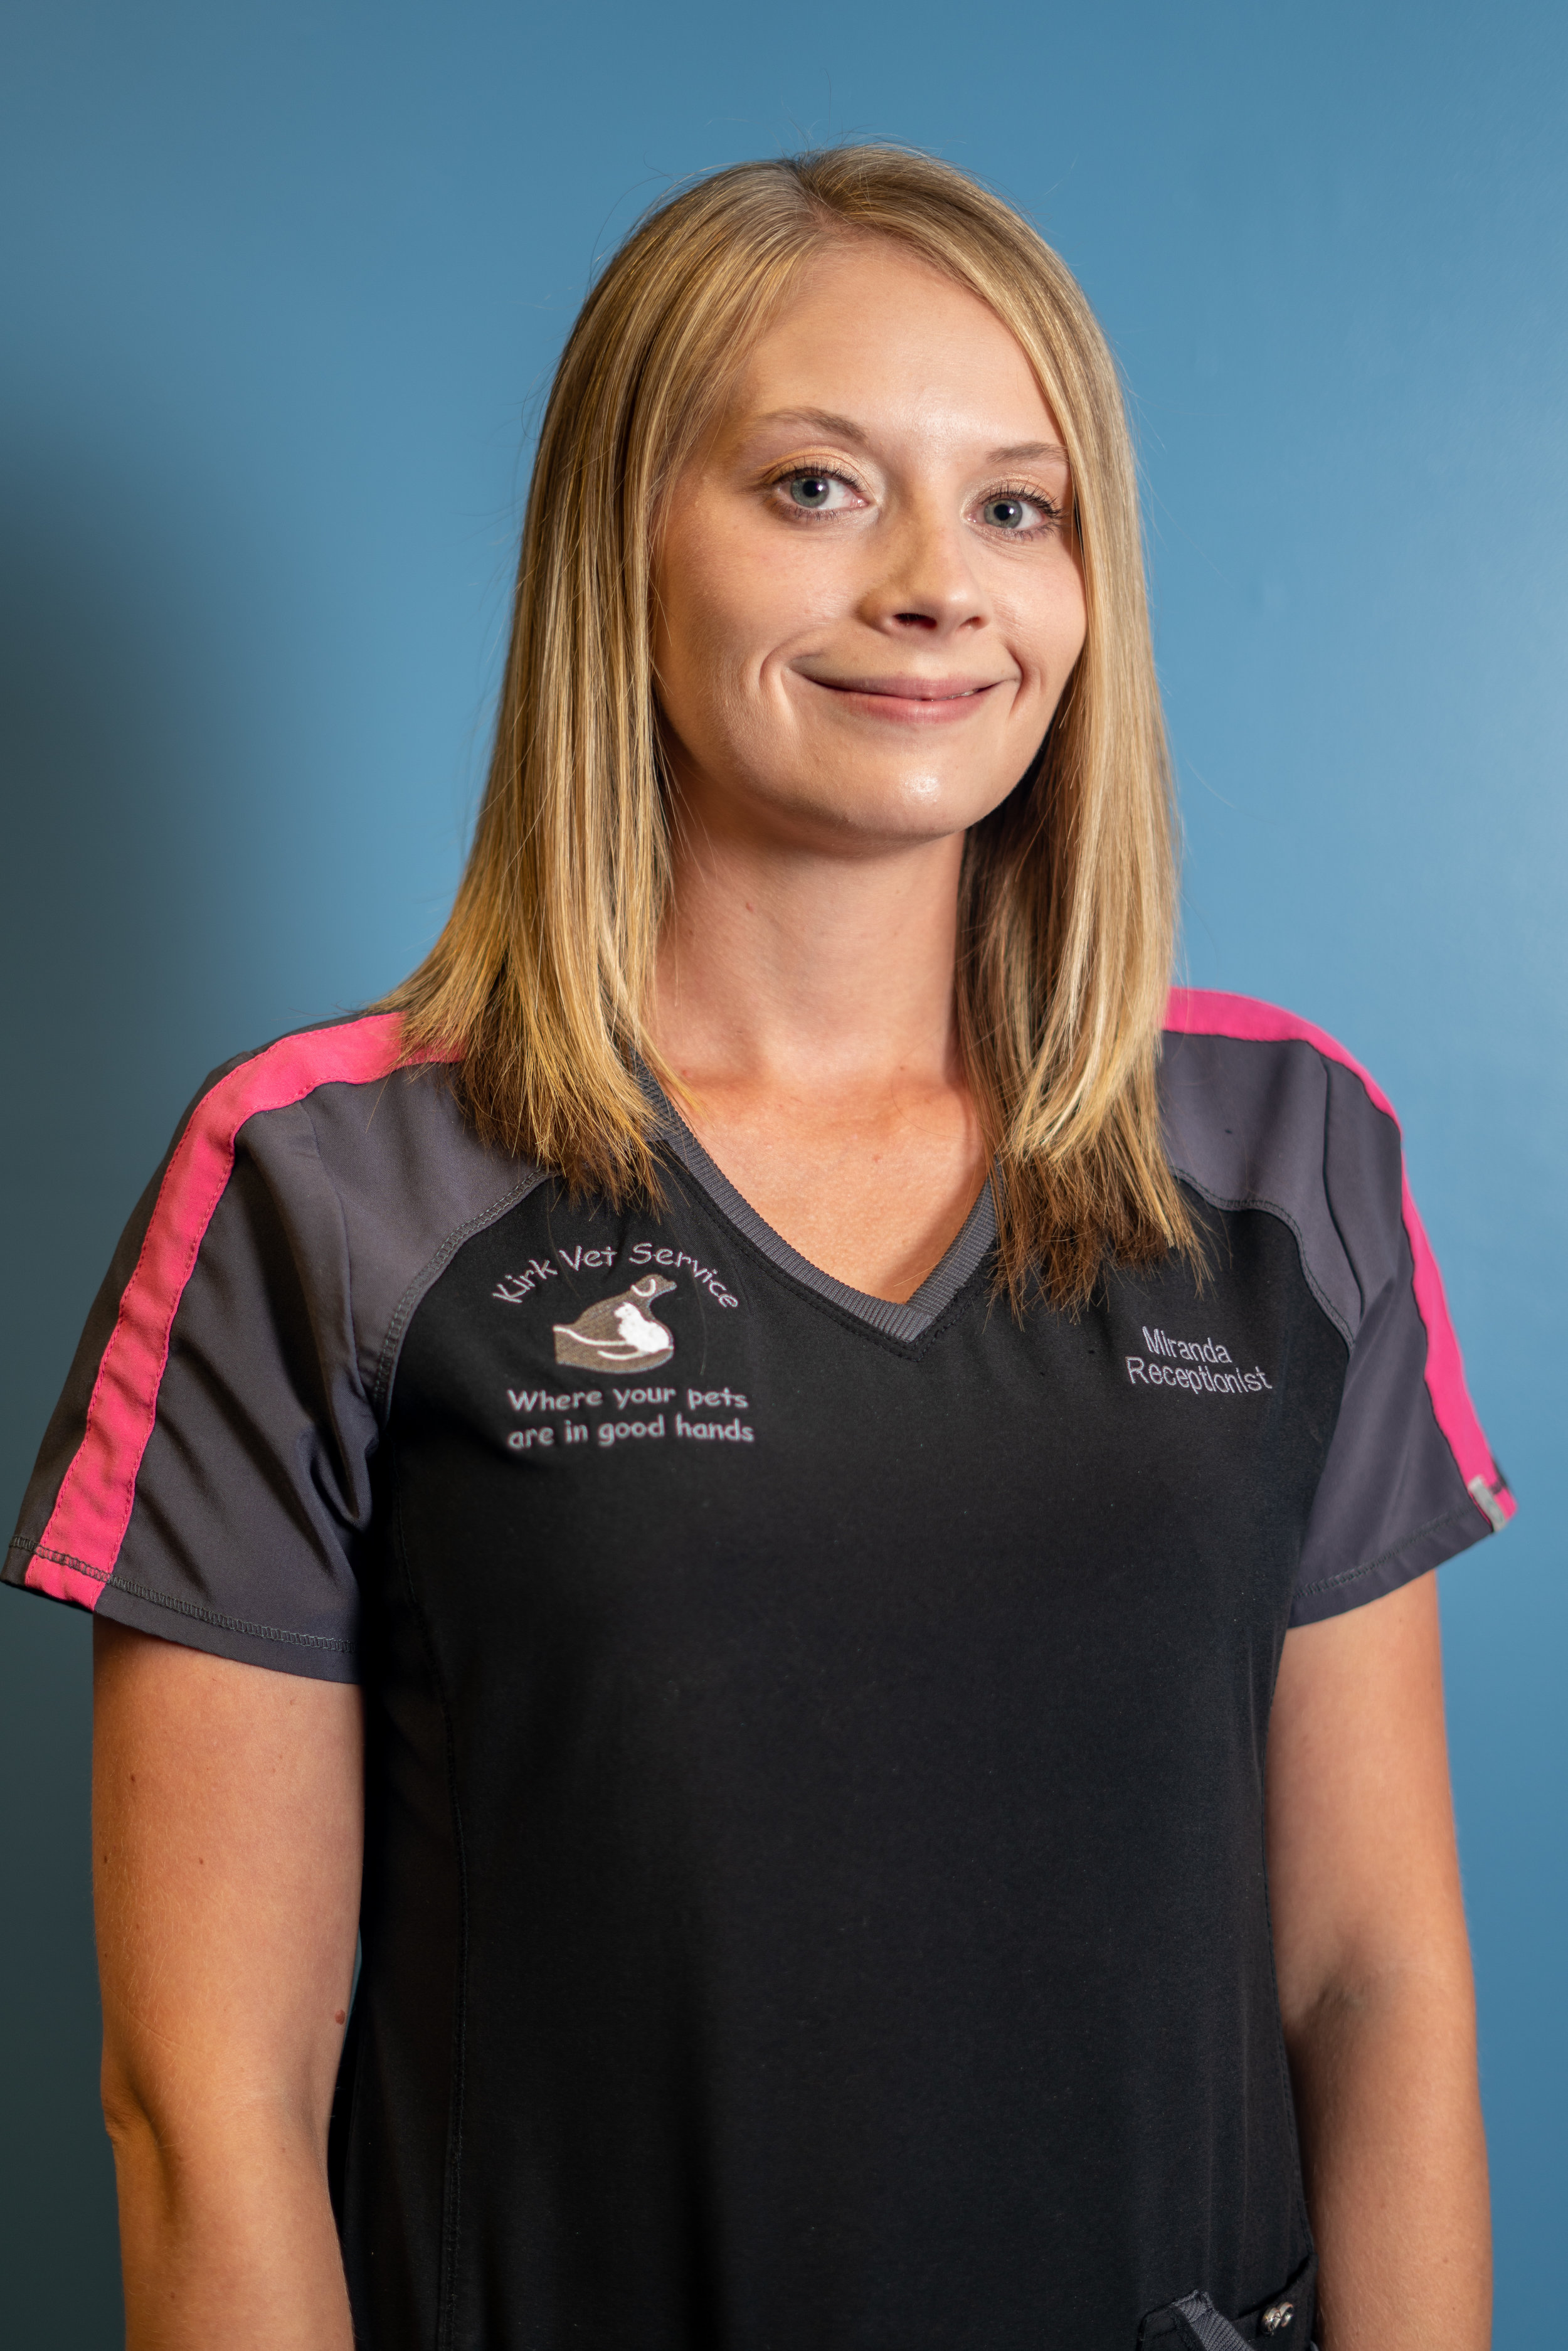 Miranda Flannery - RECEPTIONISTMiranda has been with the team for six years and is usually one of the first faces you see whenever you visit us here at Kirk Veterinary Service. She is from Paoli. Miranda and her husband, Devan, have two sons, Garrett, age 4 and Griffin,age 1.